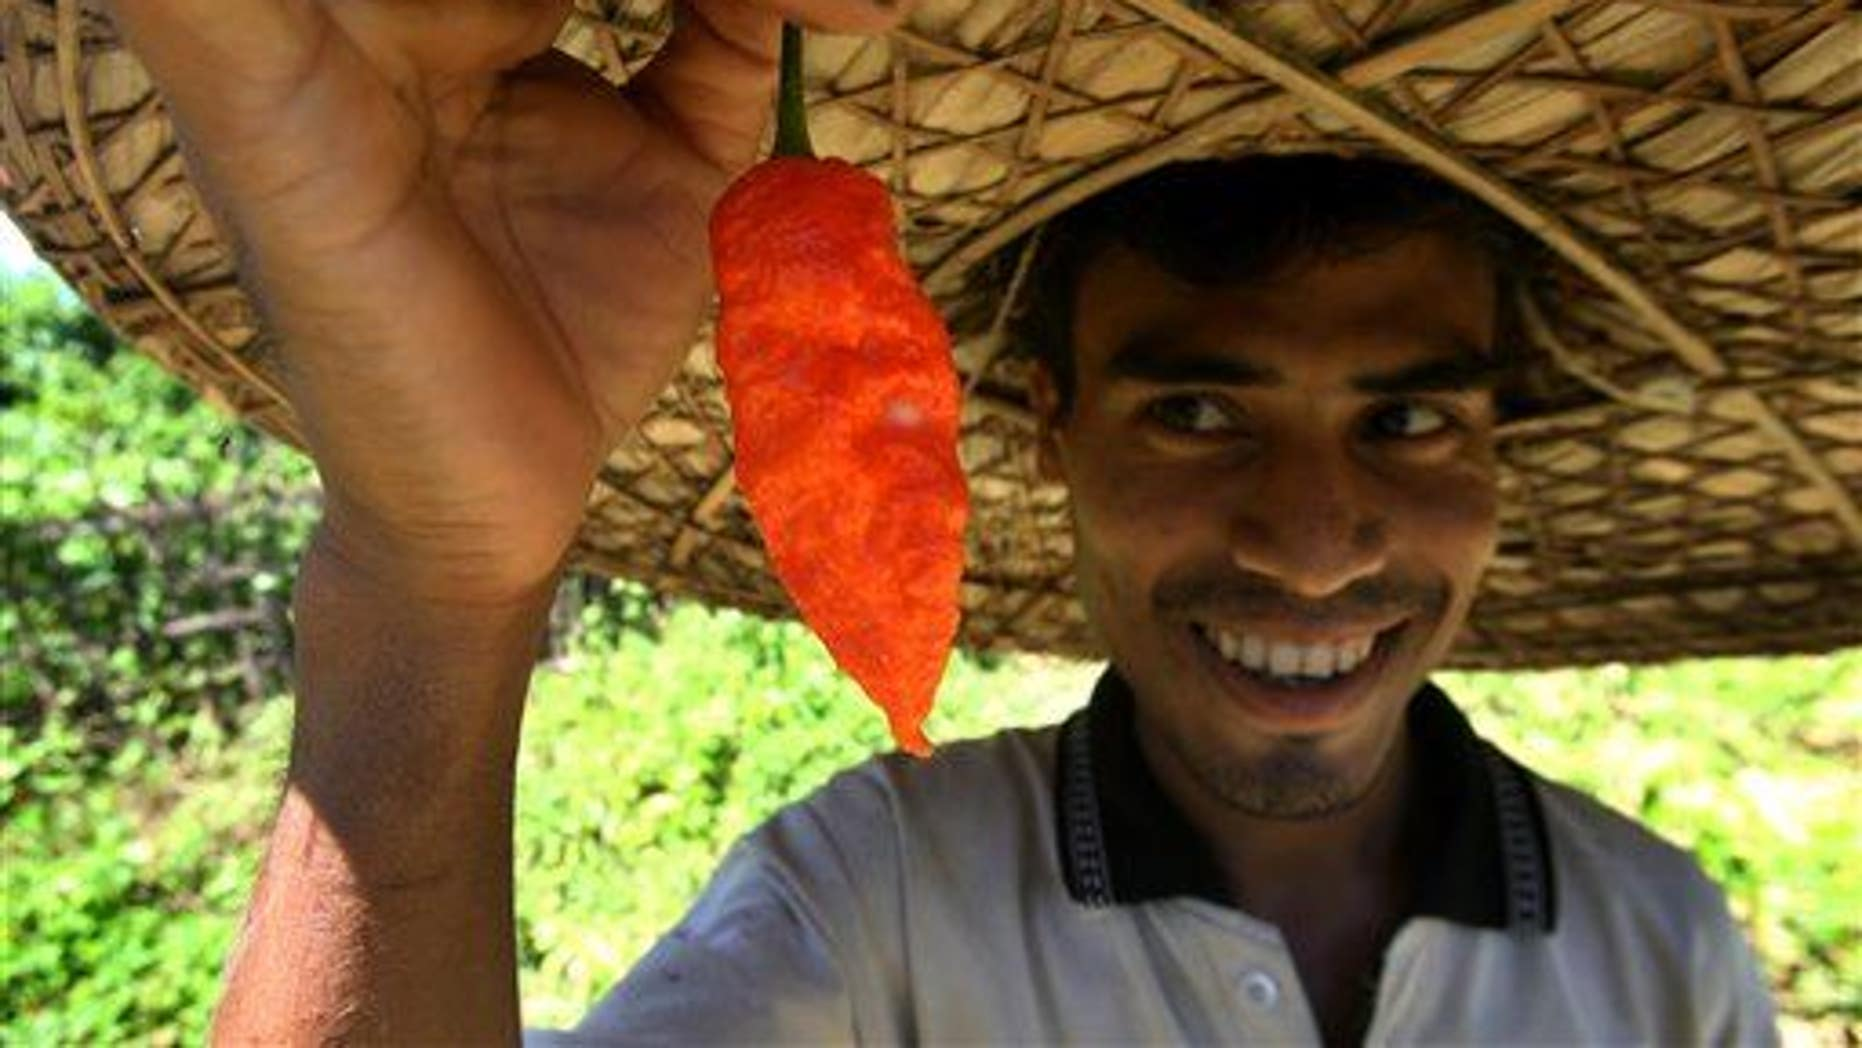 An Indian farmer holding up a Ghost Pepper picked from his fields.